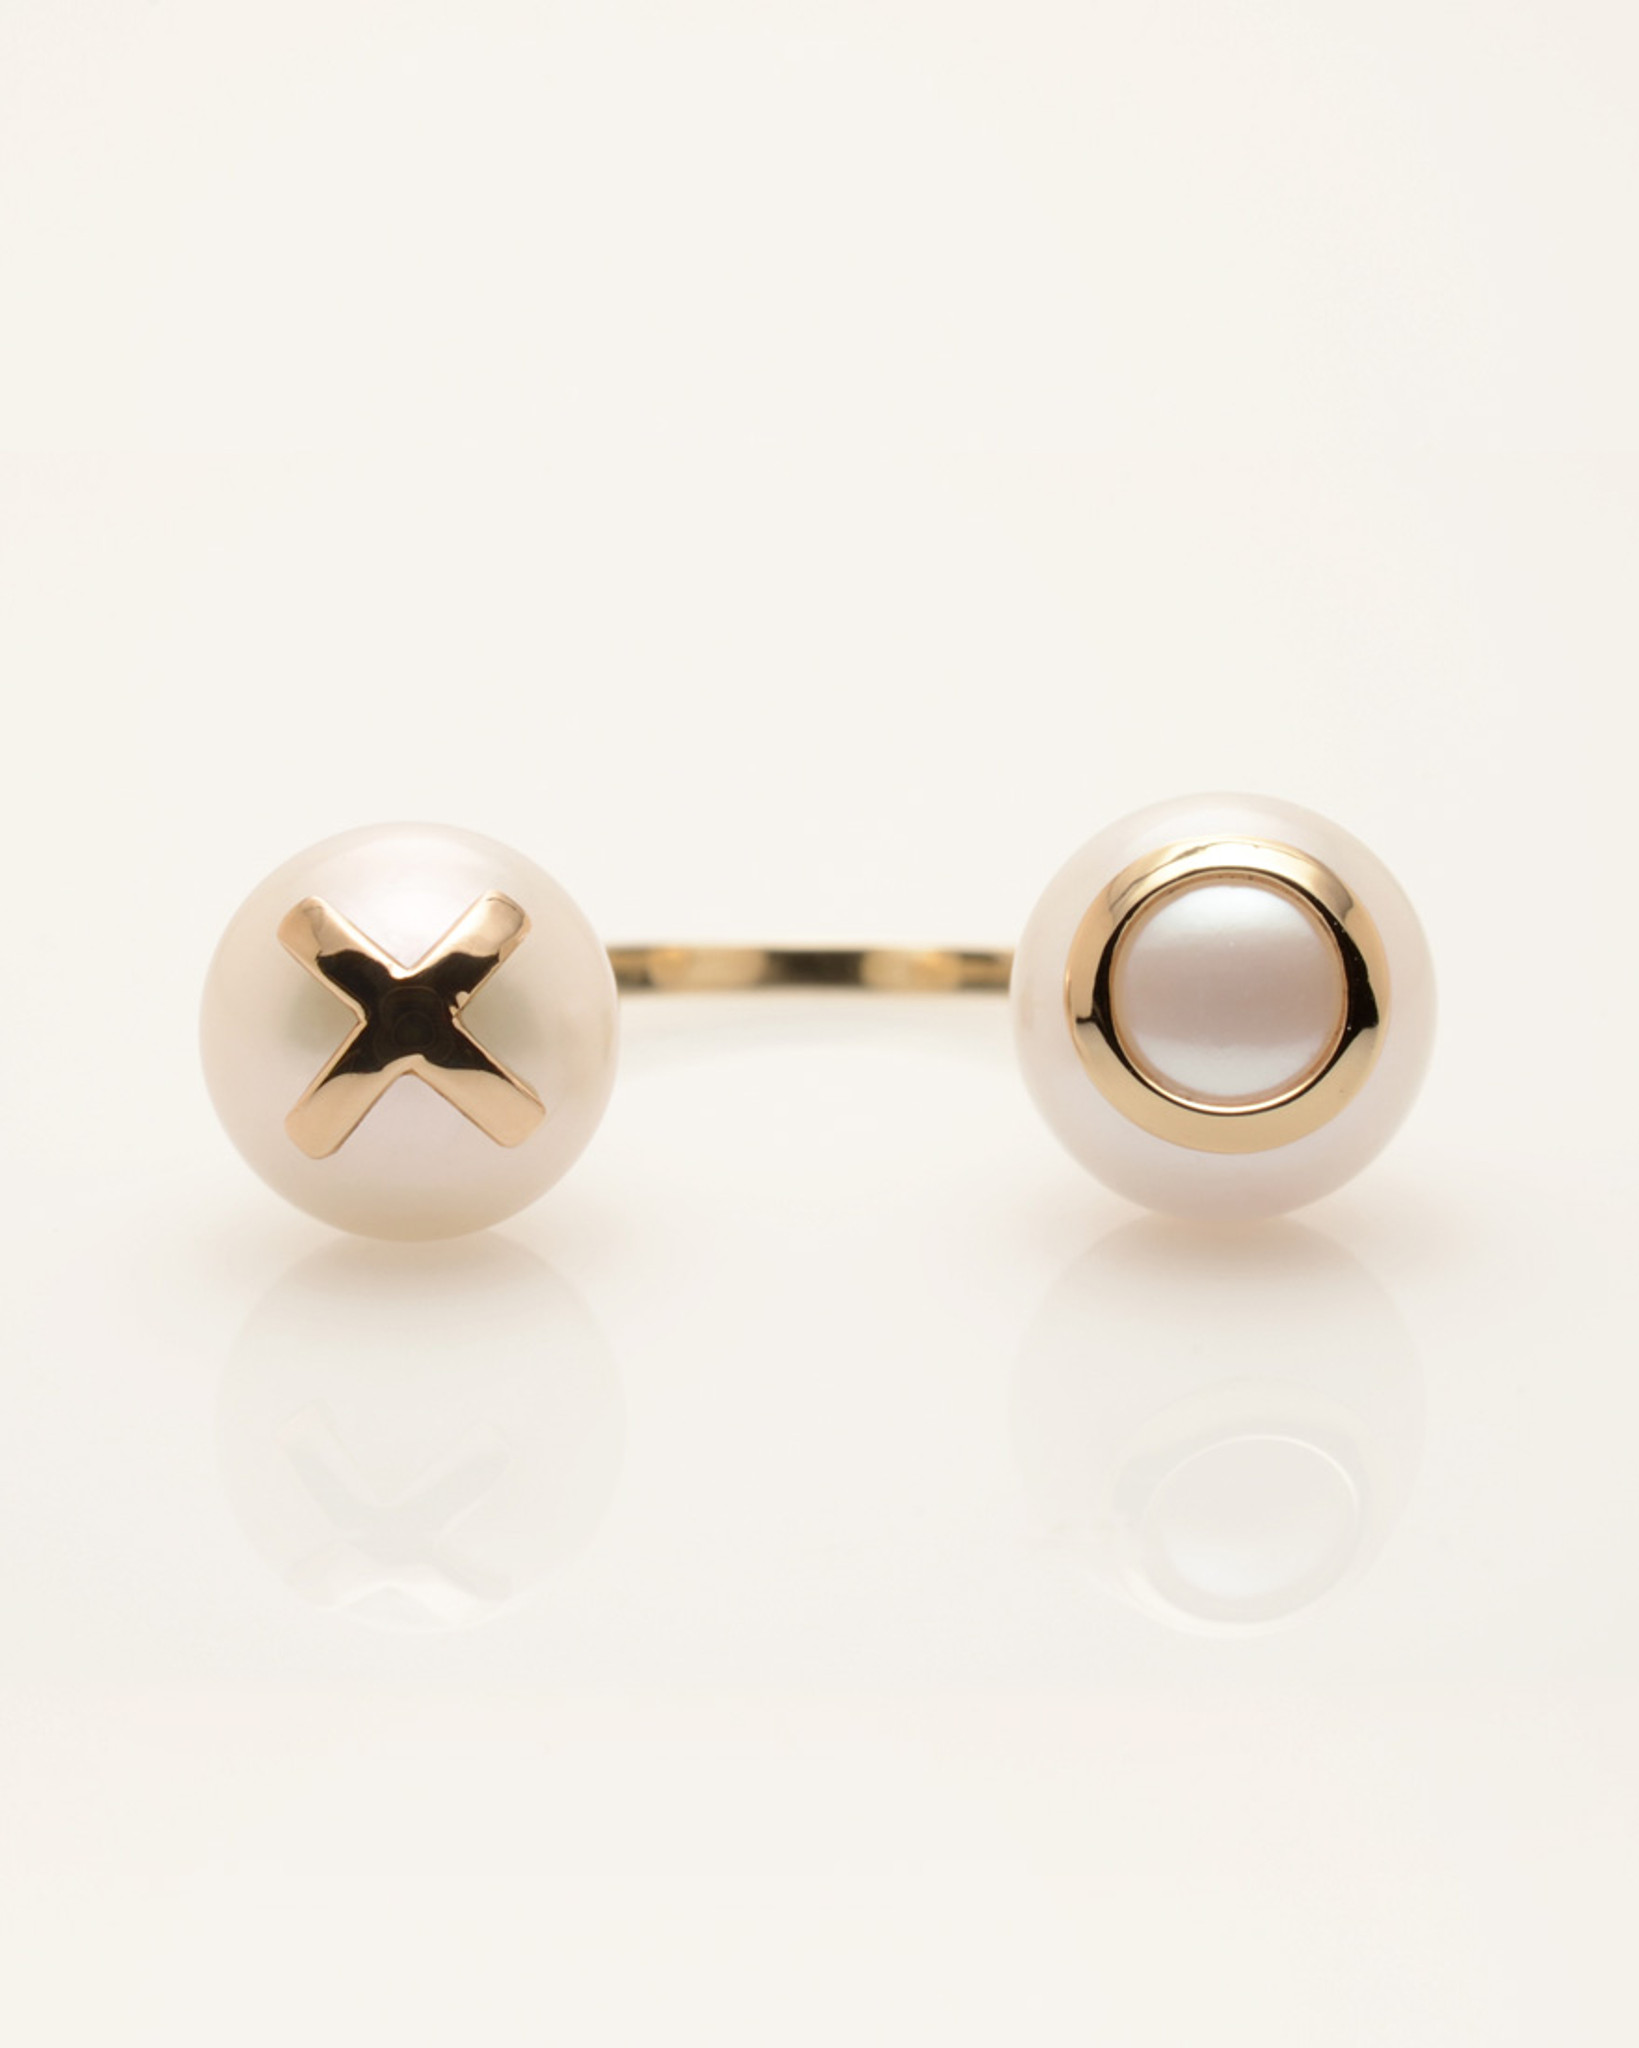 Cultured Freshwater Double Pearl Ring with 14k Gold XO Emoji by Nektar De Stagni (8-9 mm. Size 5-6-7)